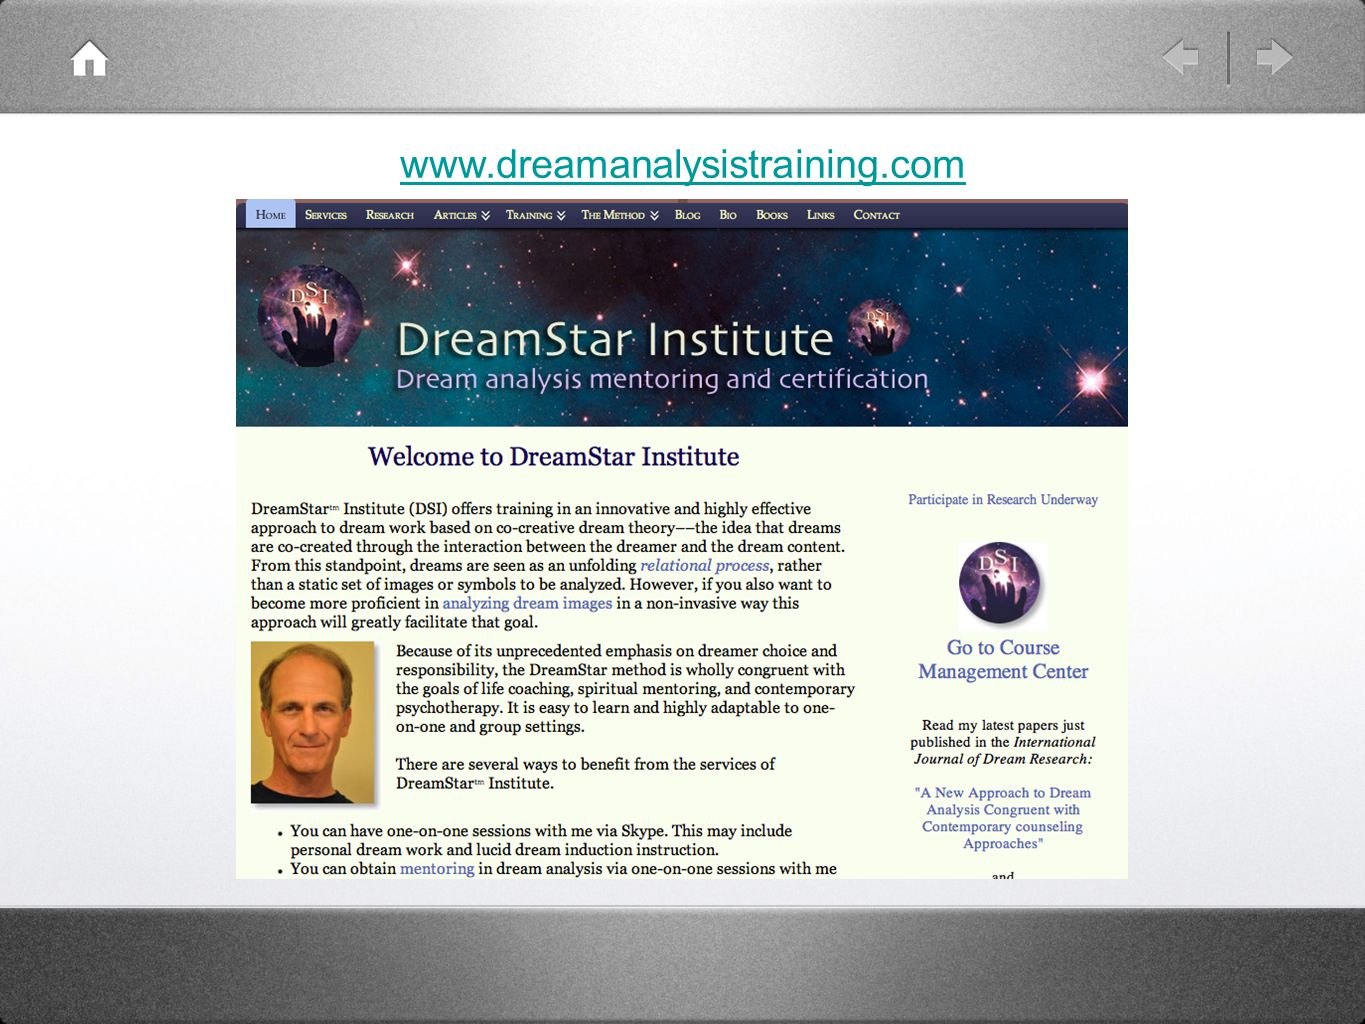 www.dreamanalysistraining.com